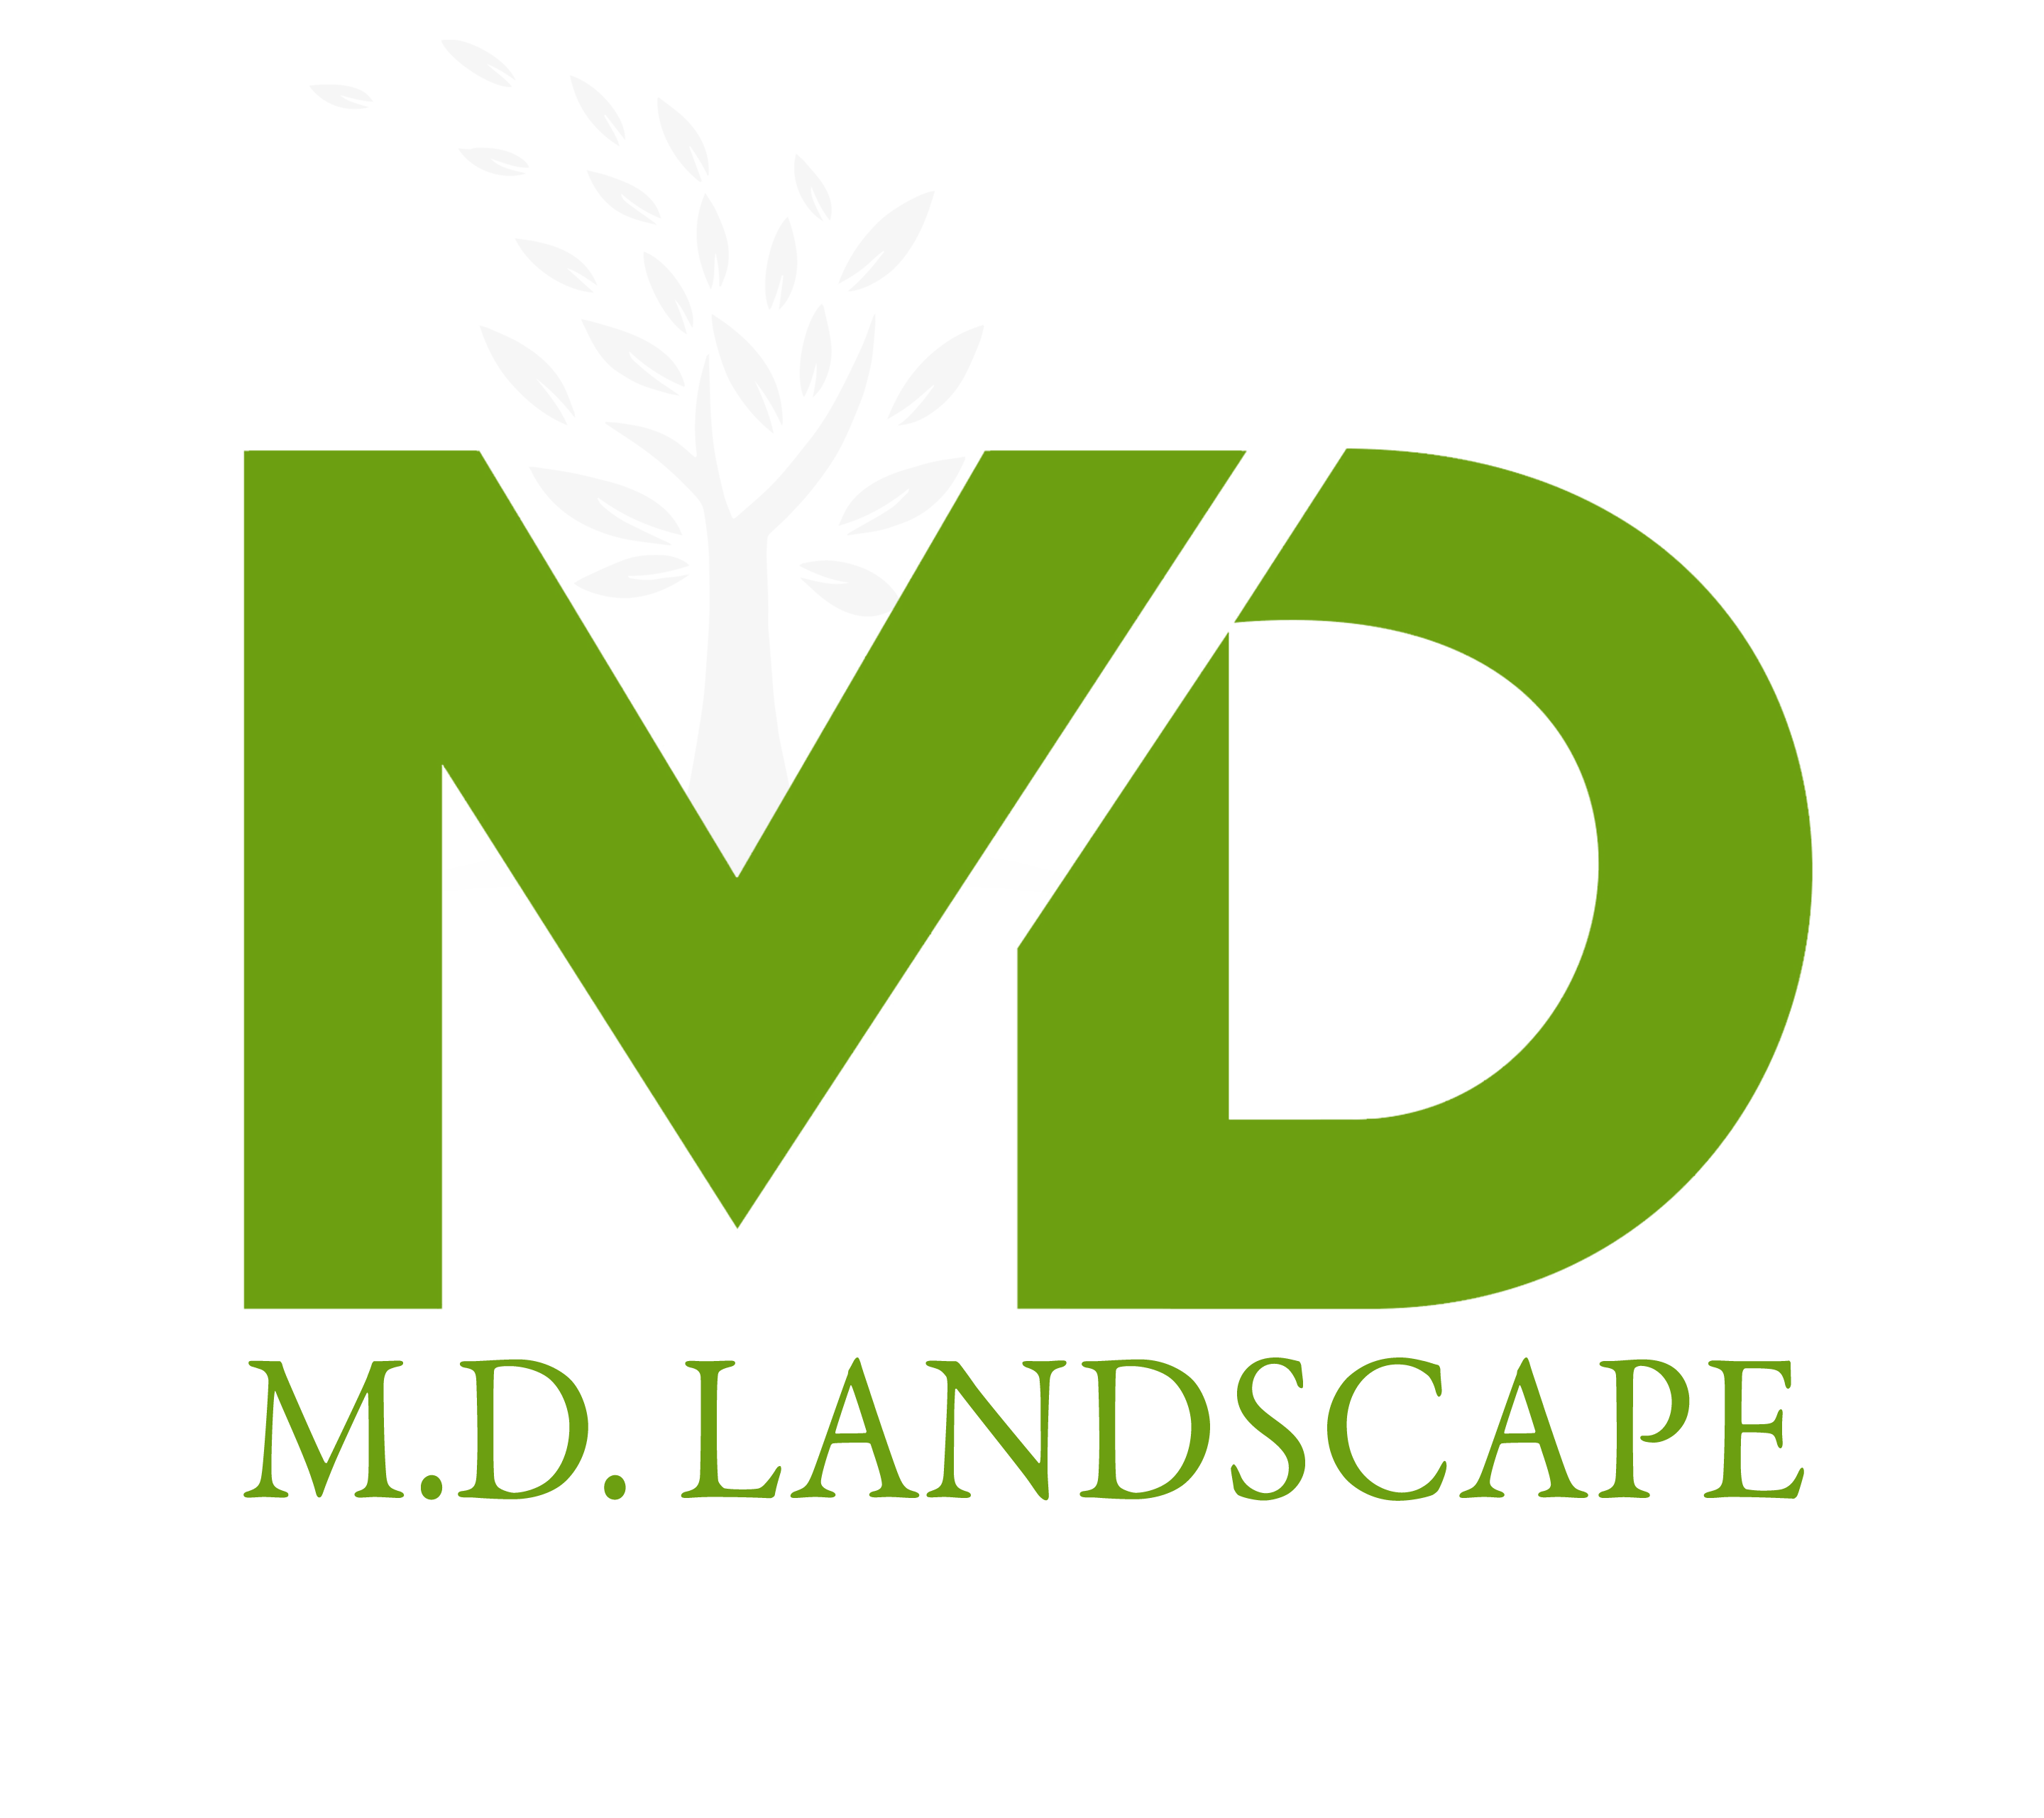 M.D. Landscape Construction